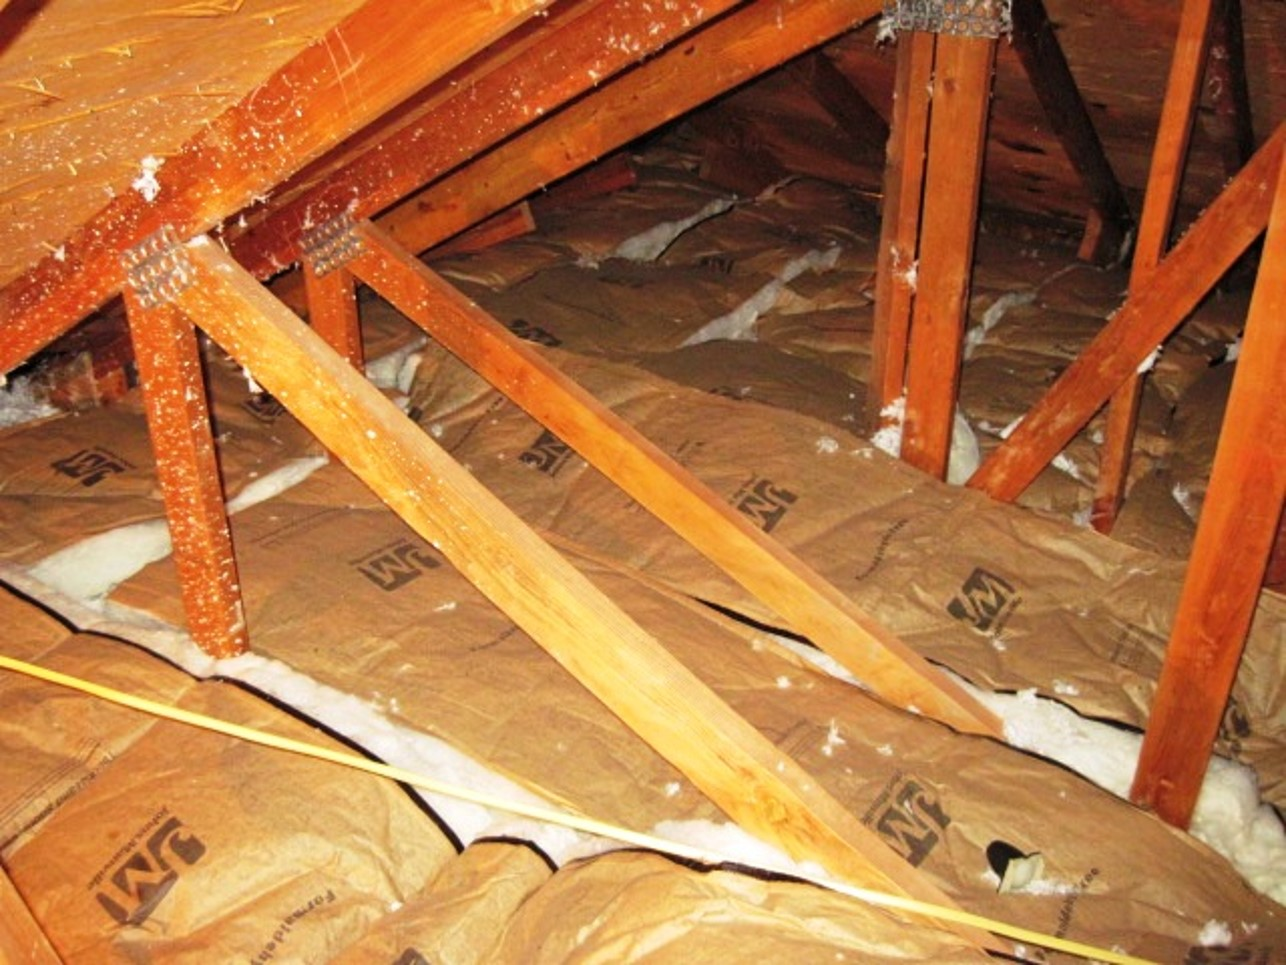 Attic insulation vapor barriers are often installed improperly which could trap moisture and create an environment conducive to mold growth.